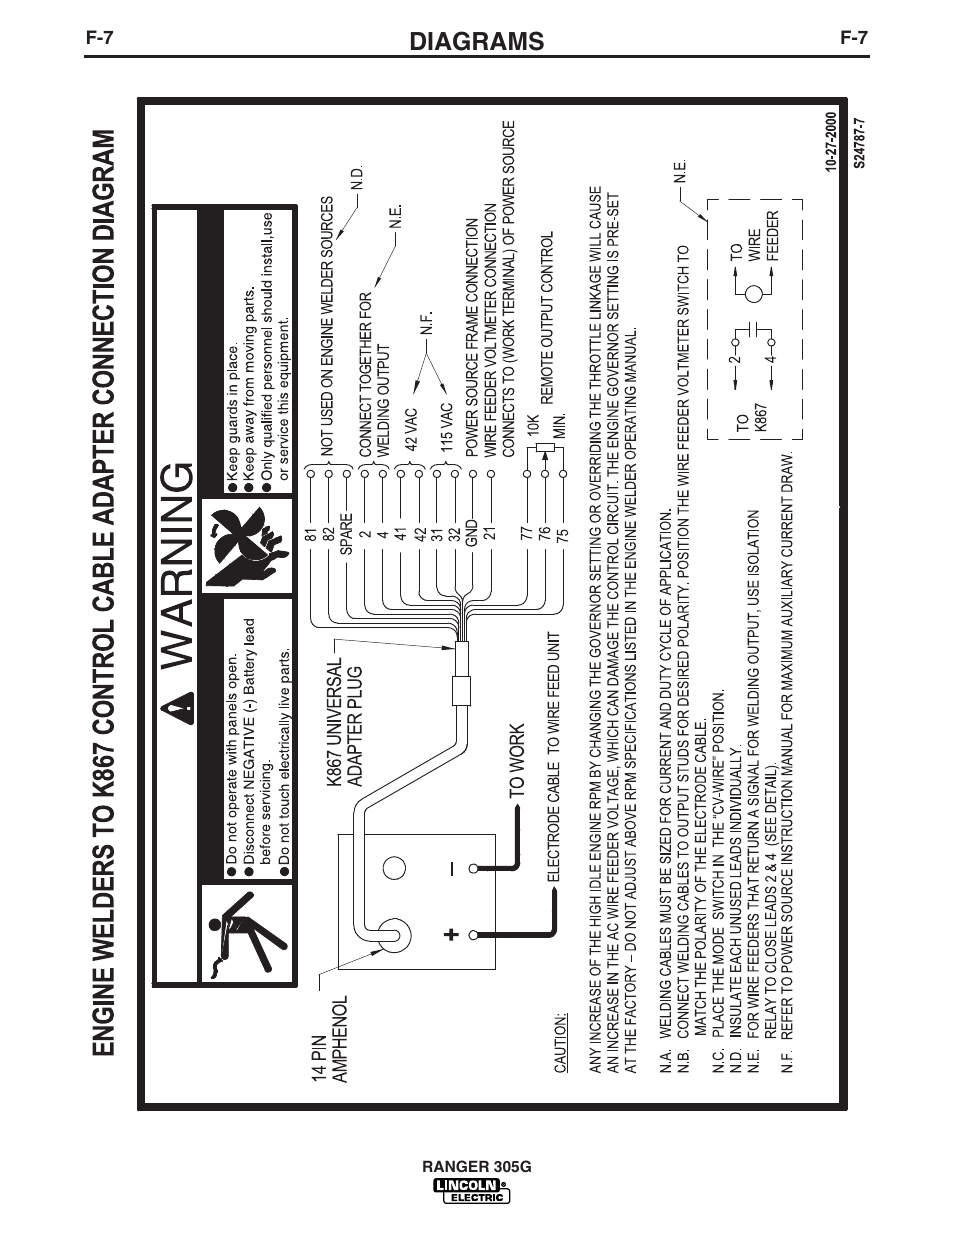 Lincoln Engine Diagrams Electric Ranger 305g User Manual Page 41 49